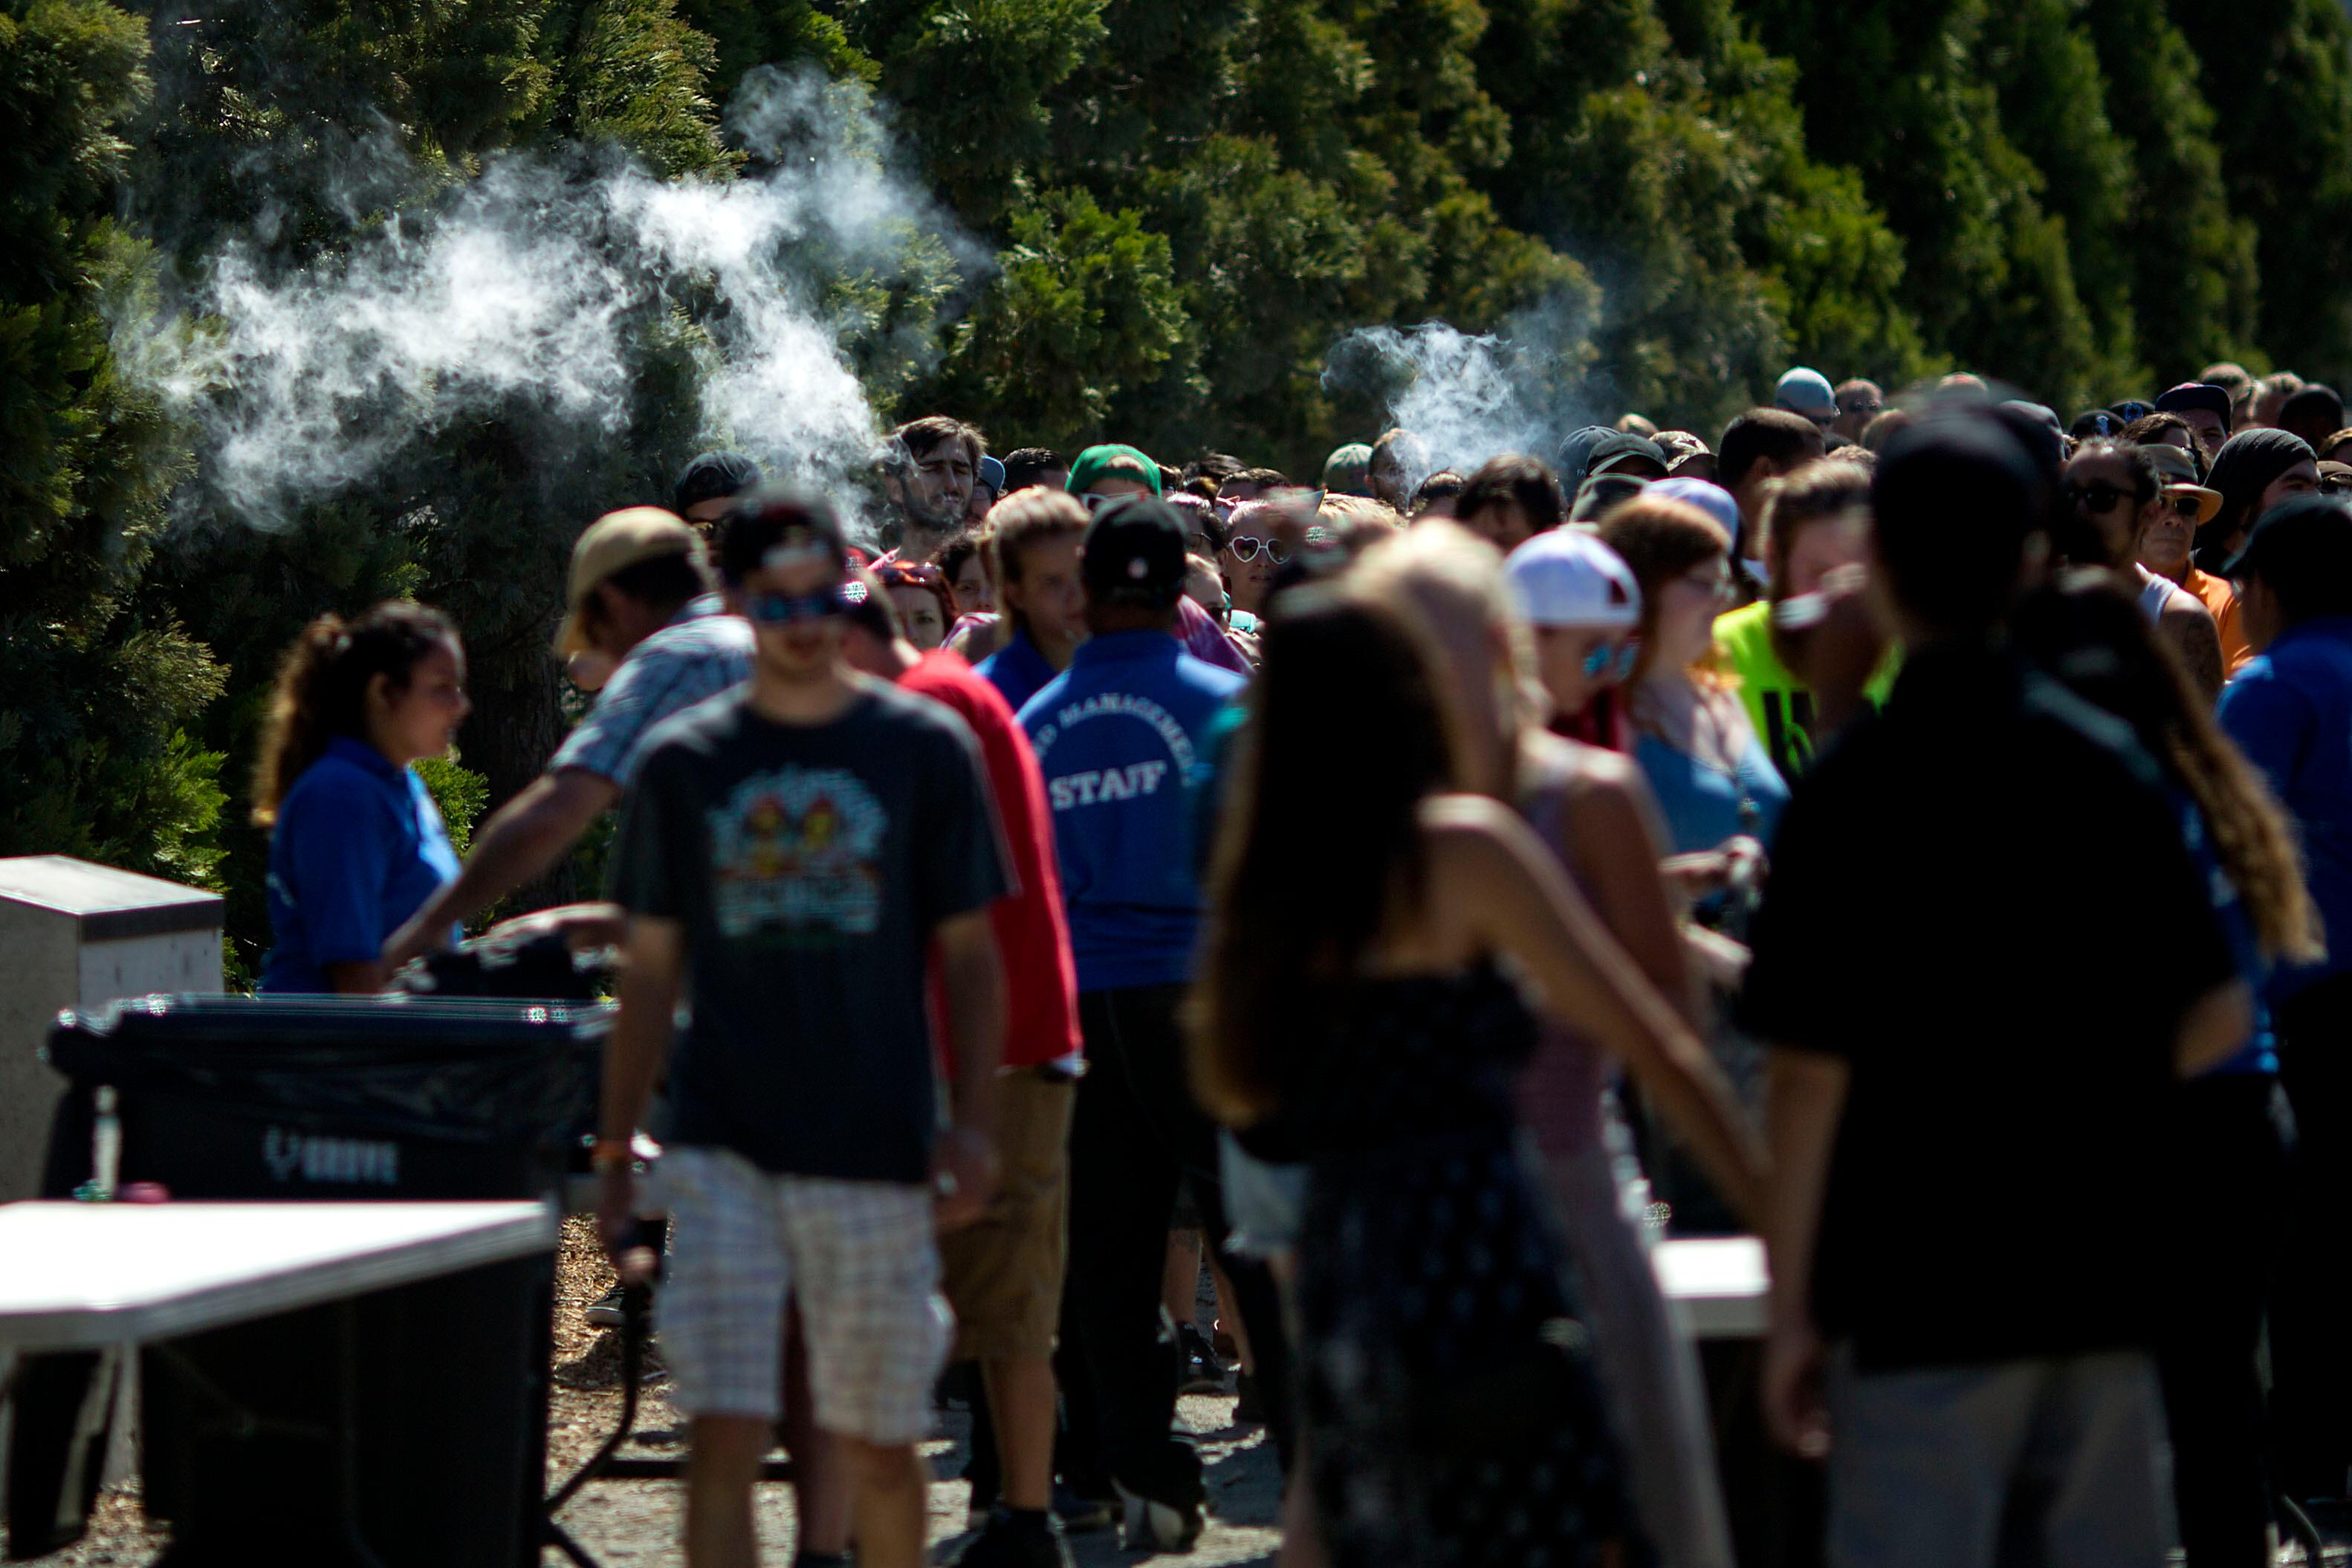 Tens of thousands of people will come out to the Seattle waterfront for the 26th Annual Hempfest this weekend. Hempfest is the largest 'protestival' in the country, with hundreds of speakers, bands and vendors. (Image: Sy Bean / Seattle Refined)